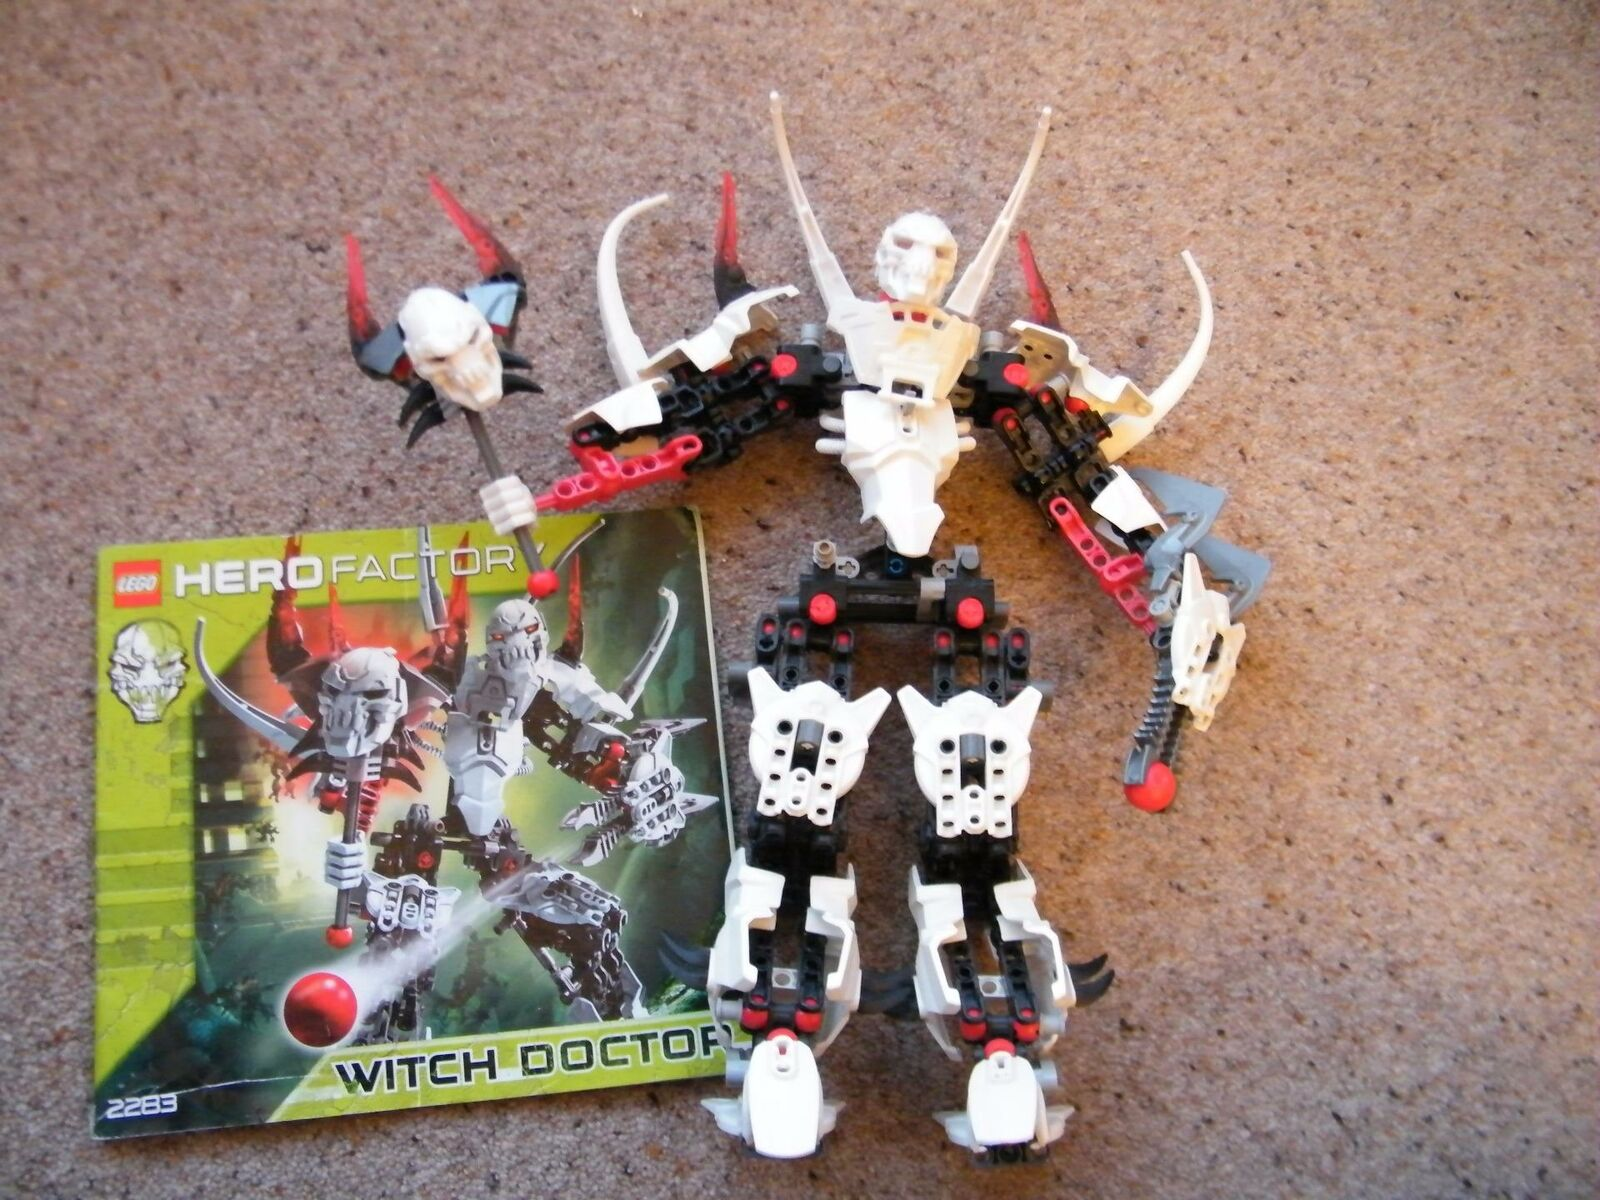 Lego Hero Factory Witch Doctor Set 2283 Figure & Instructions complet rare